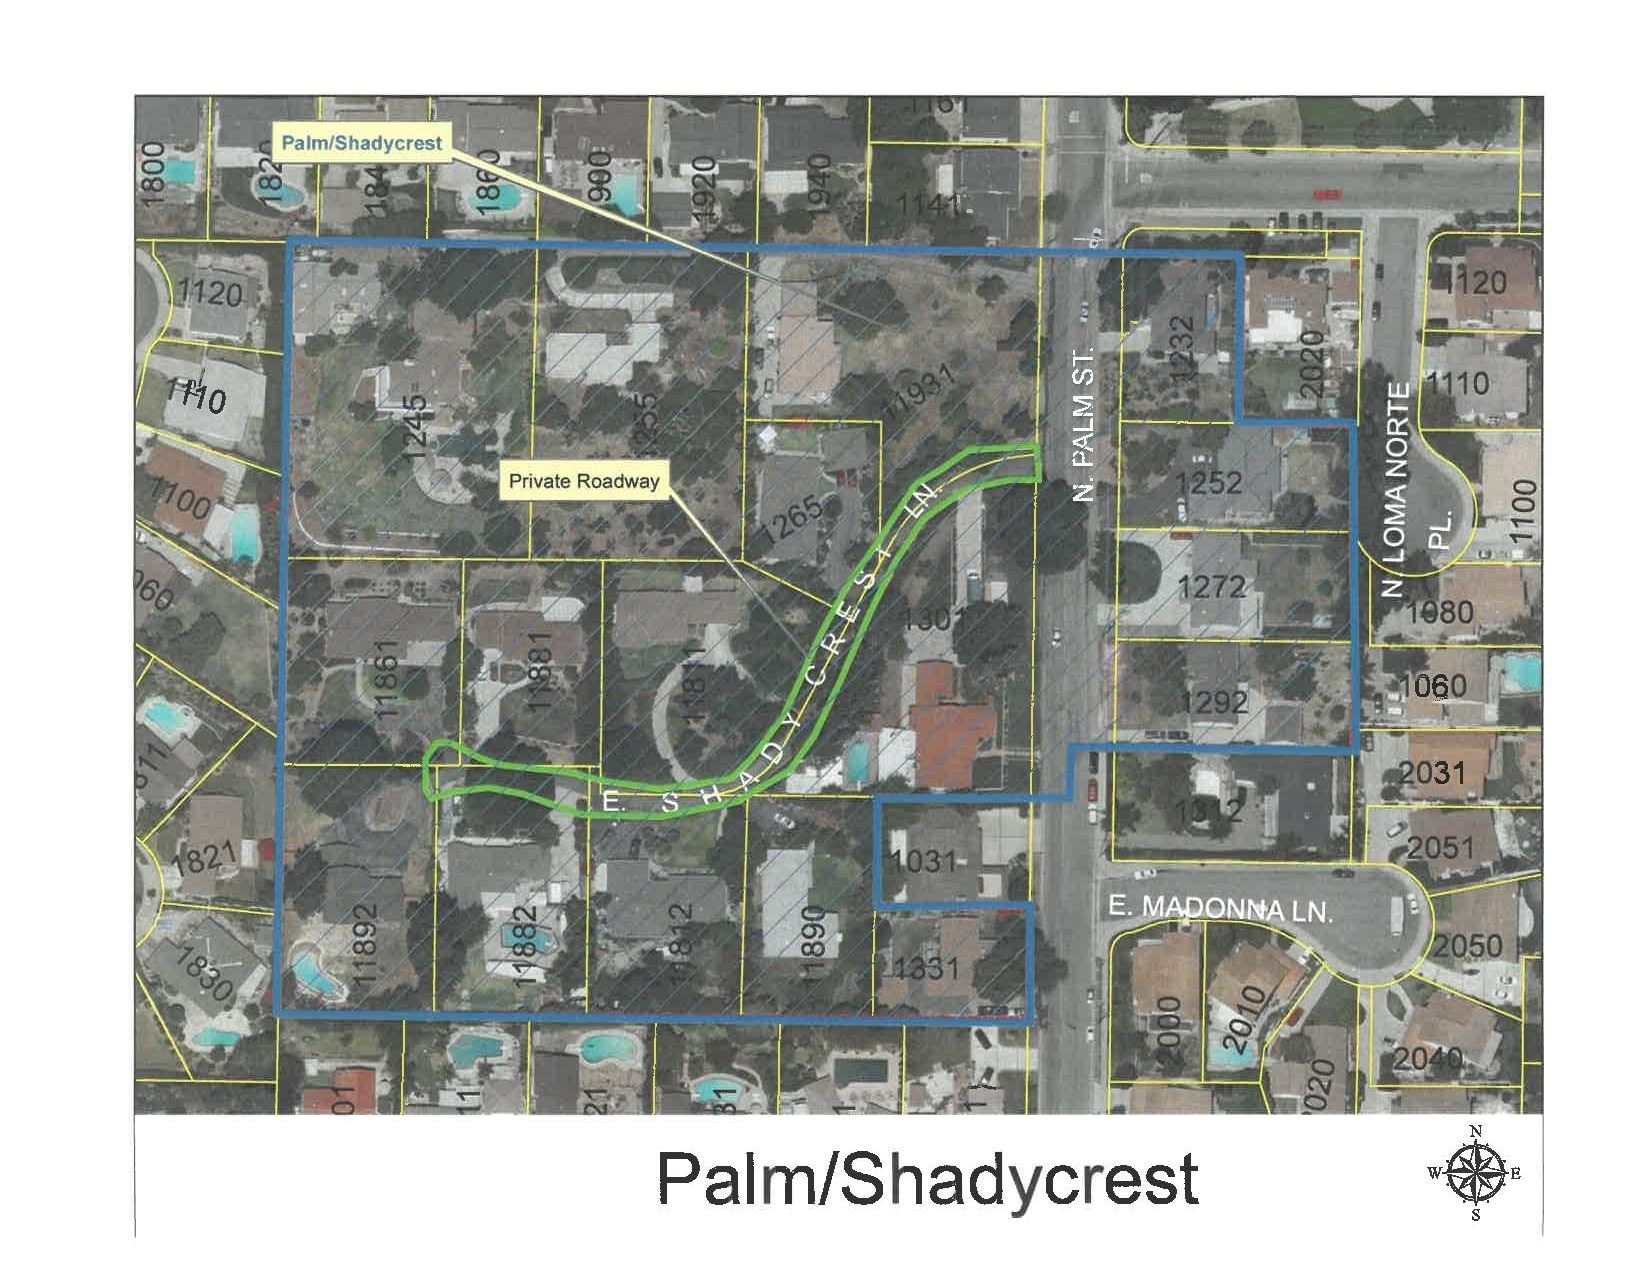 Palm Shadycrest